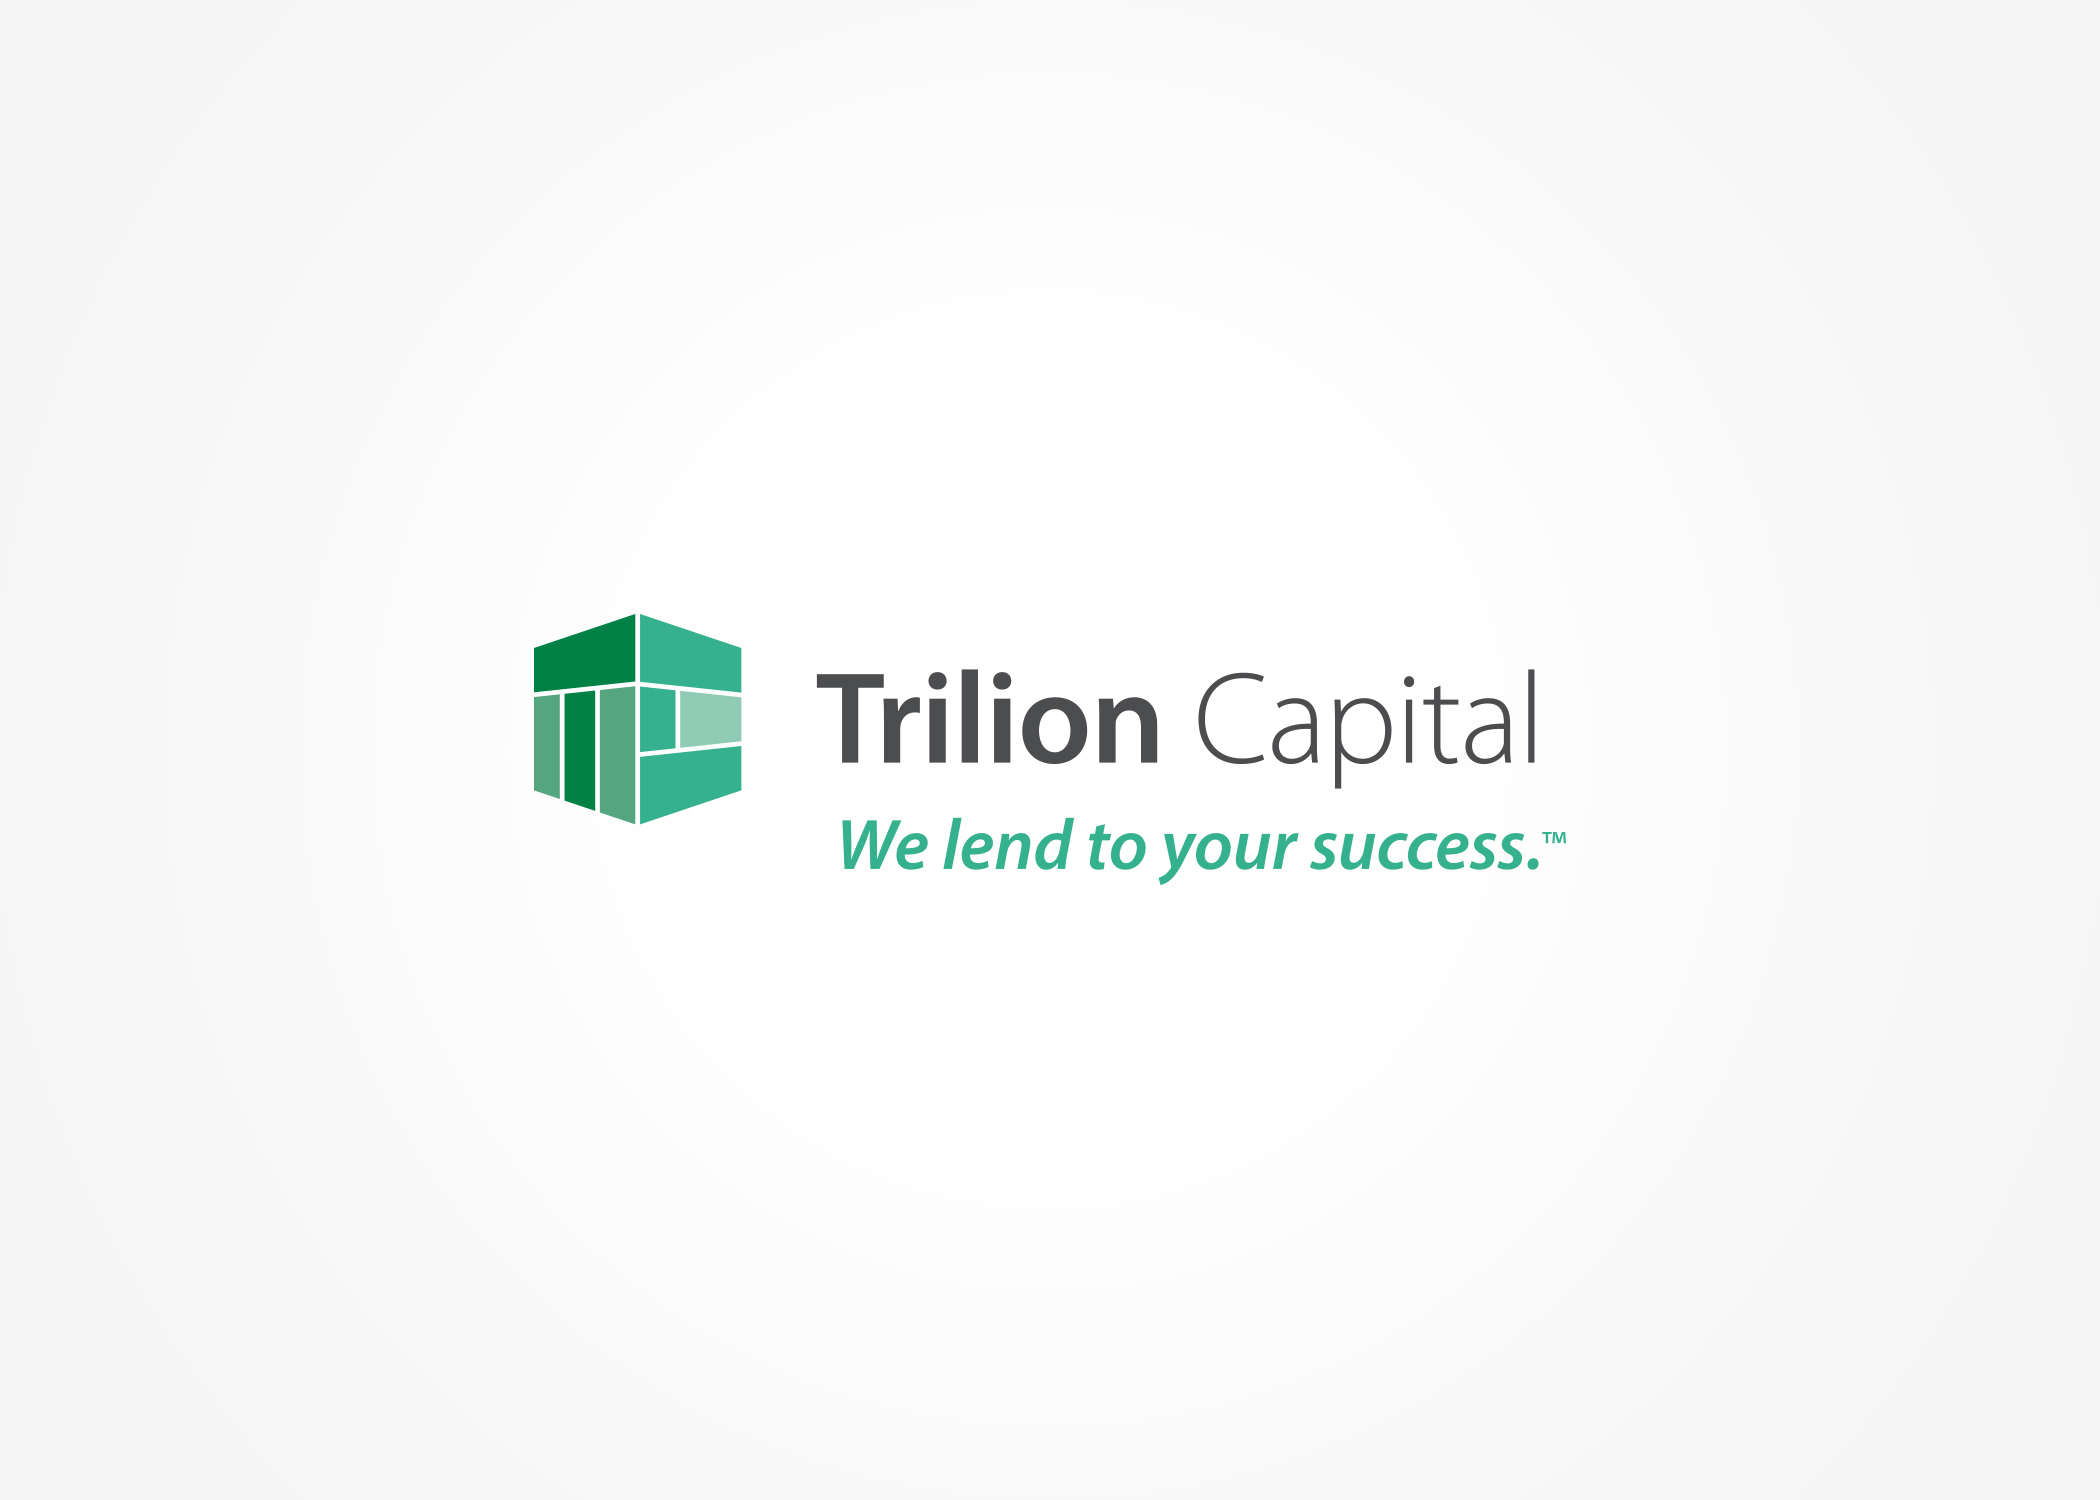 Trilion Capital Logo.jpg